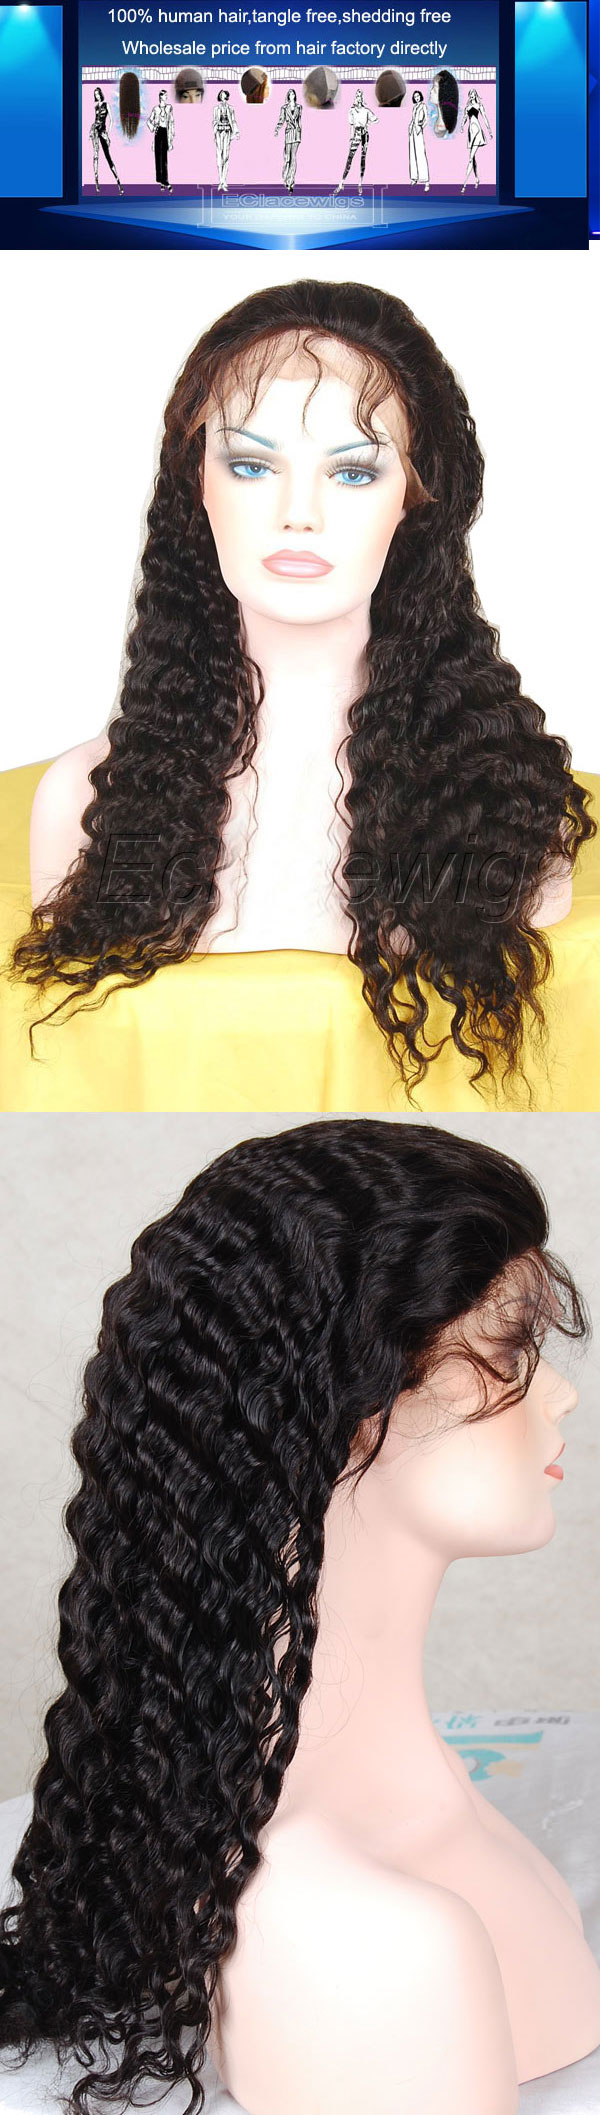 Spring afro curl wig